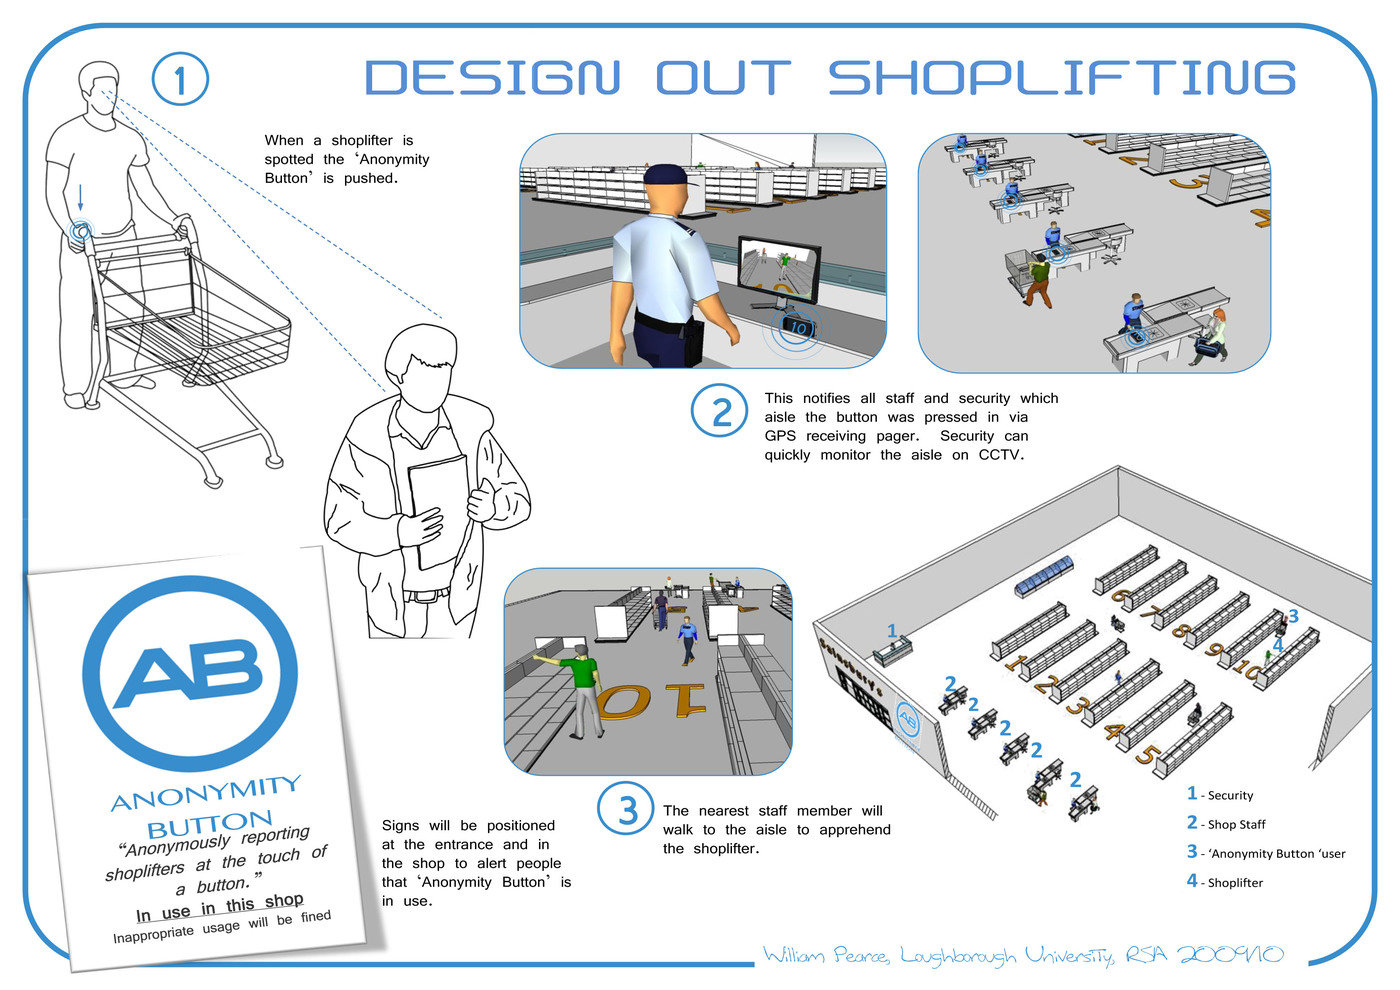 RSA Assignment - Design Out Shoplifting by Will Pearce at